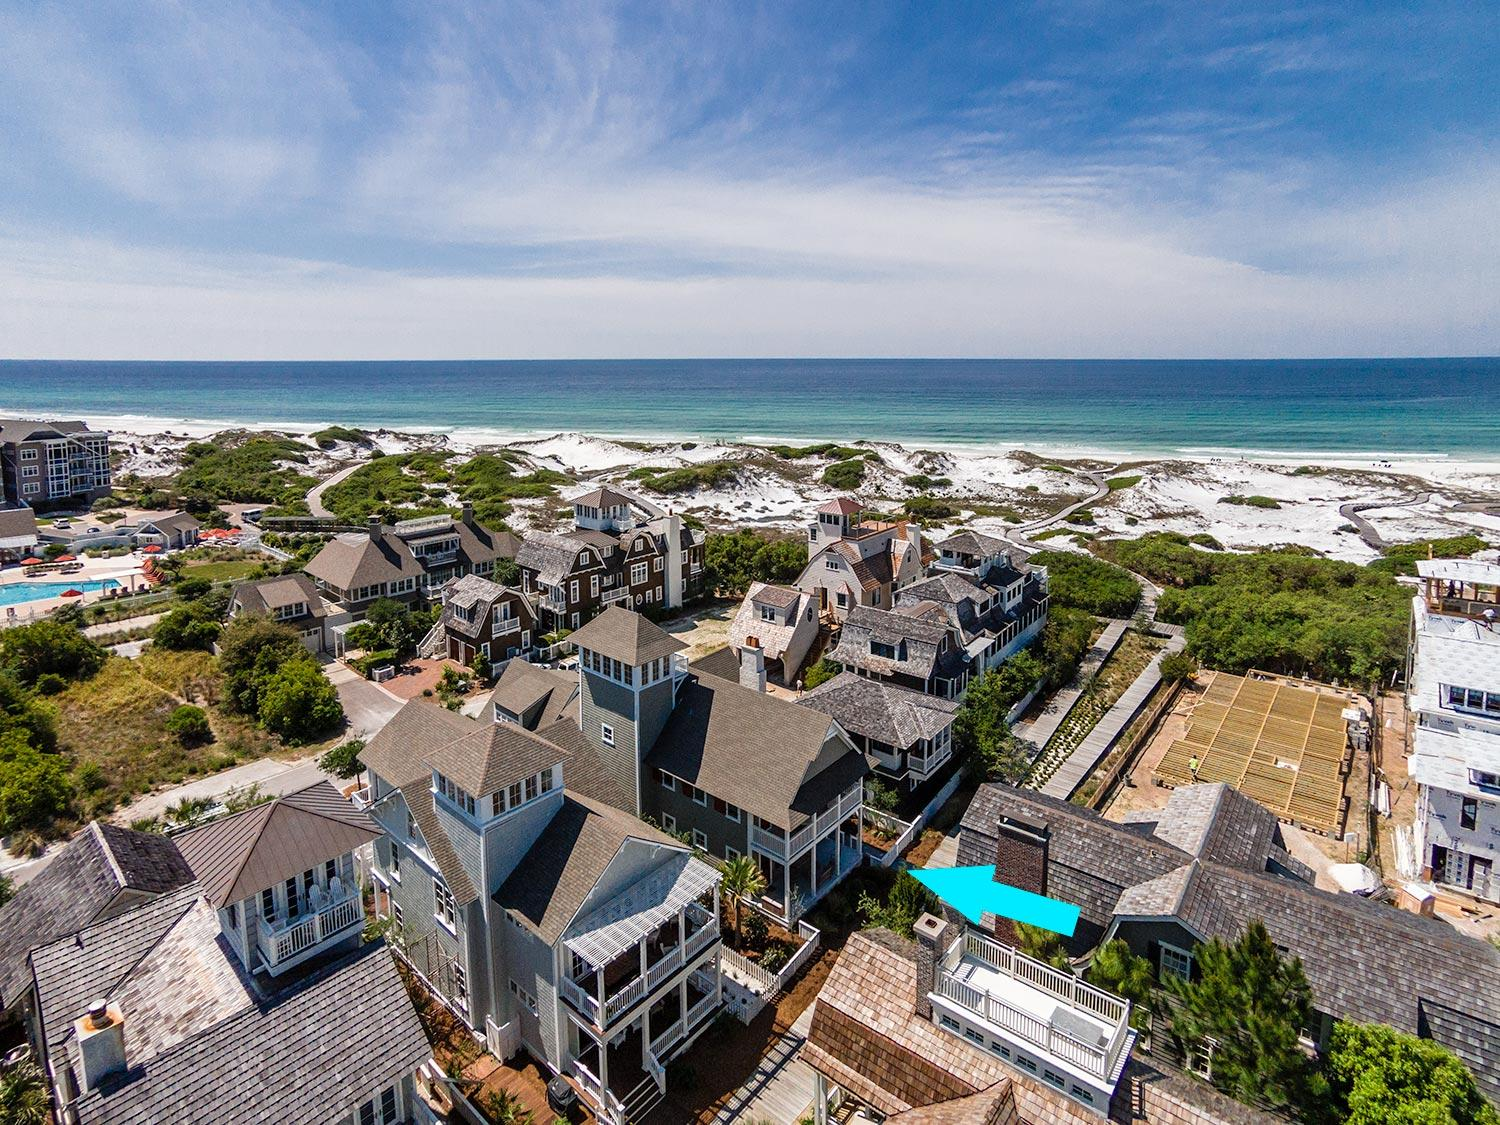 Perfectly Located within Watersound - Amazing Views / Near Dune Sider Pool